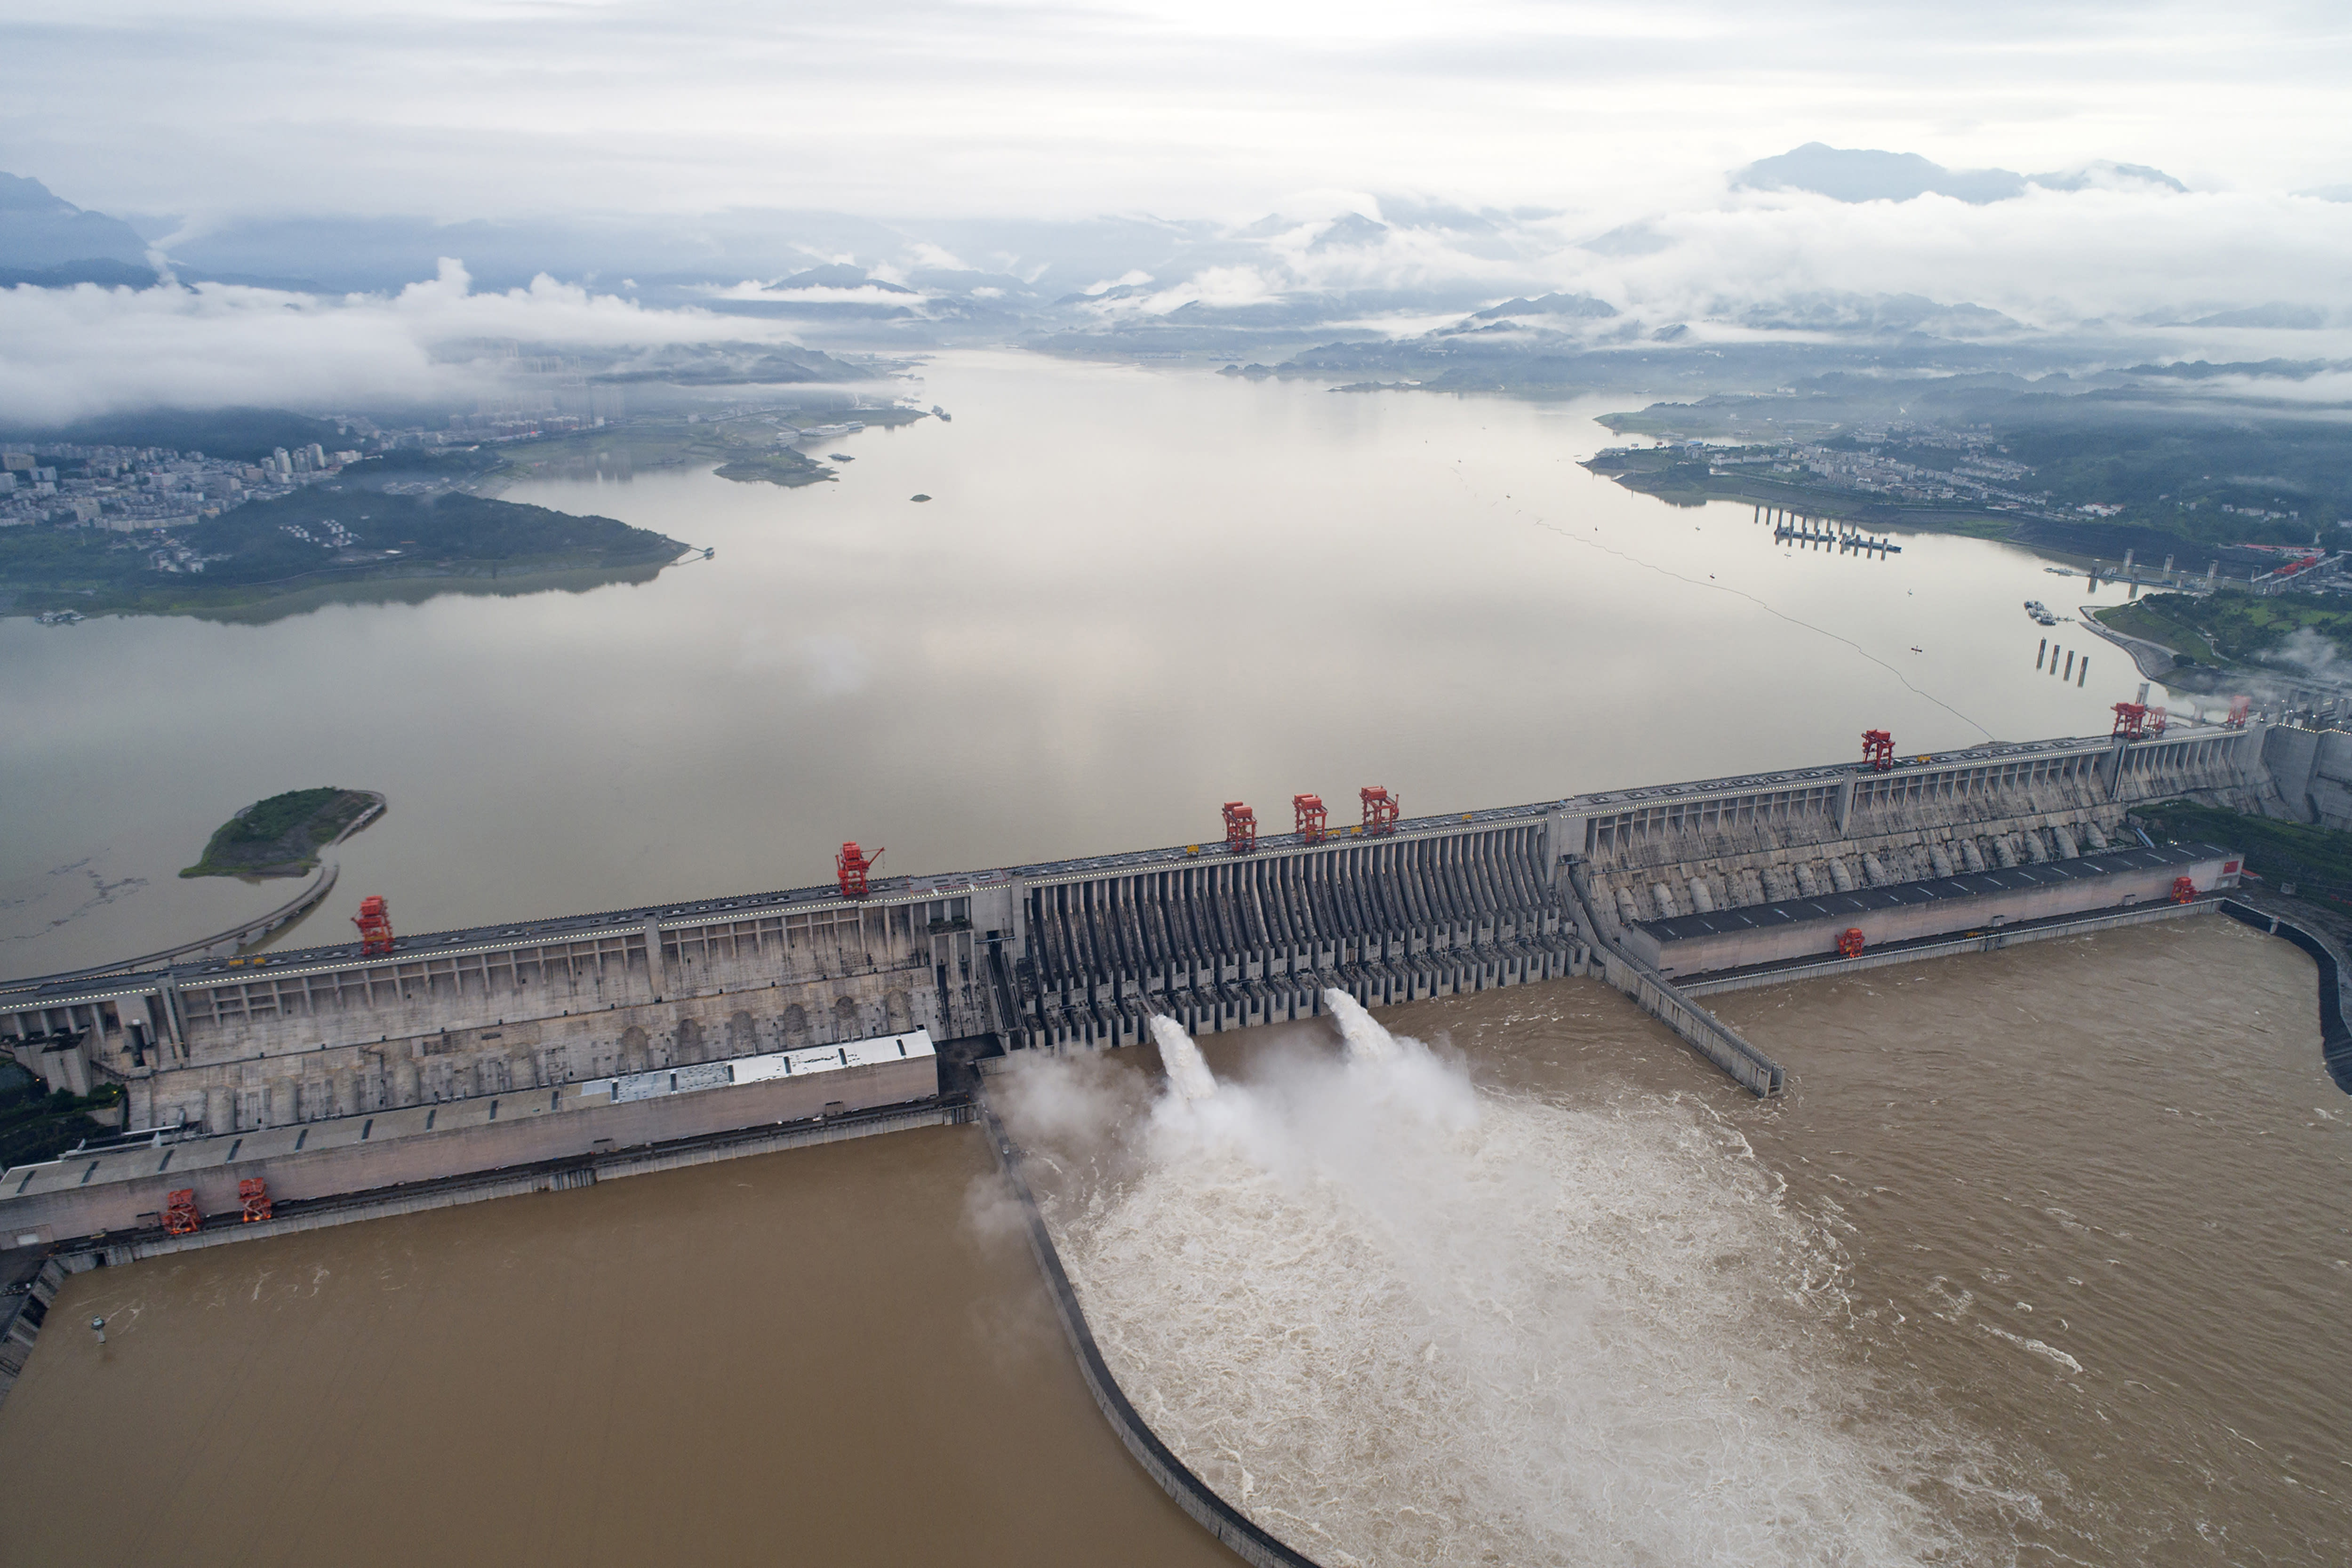 In this photo released by China's Xinhua News Agency, water flows out from sluiceways at the Three Gorges Dam on the Yangtze River near Yichang in central China's Hubei Province, Friday, July 17, 2020. Engorged with more heavy rains, China's mighty Yangtze River is cresting again, bringing fears of further destruction as seasonal floods that already have left more than a hundred people dead or missing have grown in force since last month. (Wang Gang/Xinhua via AP)